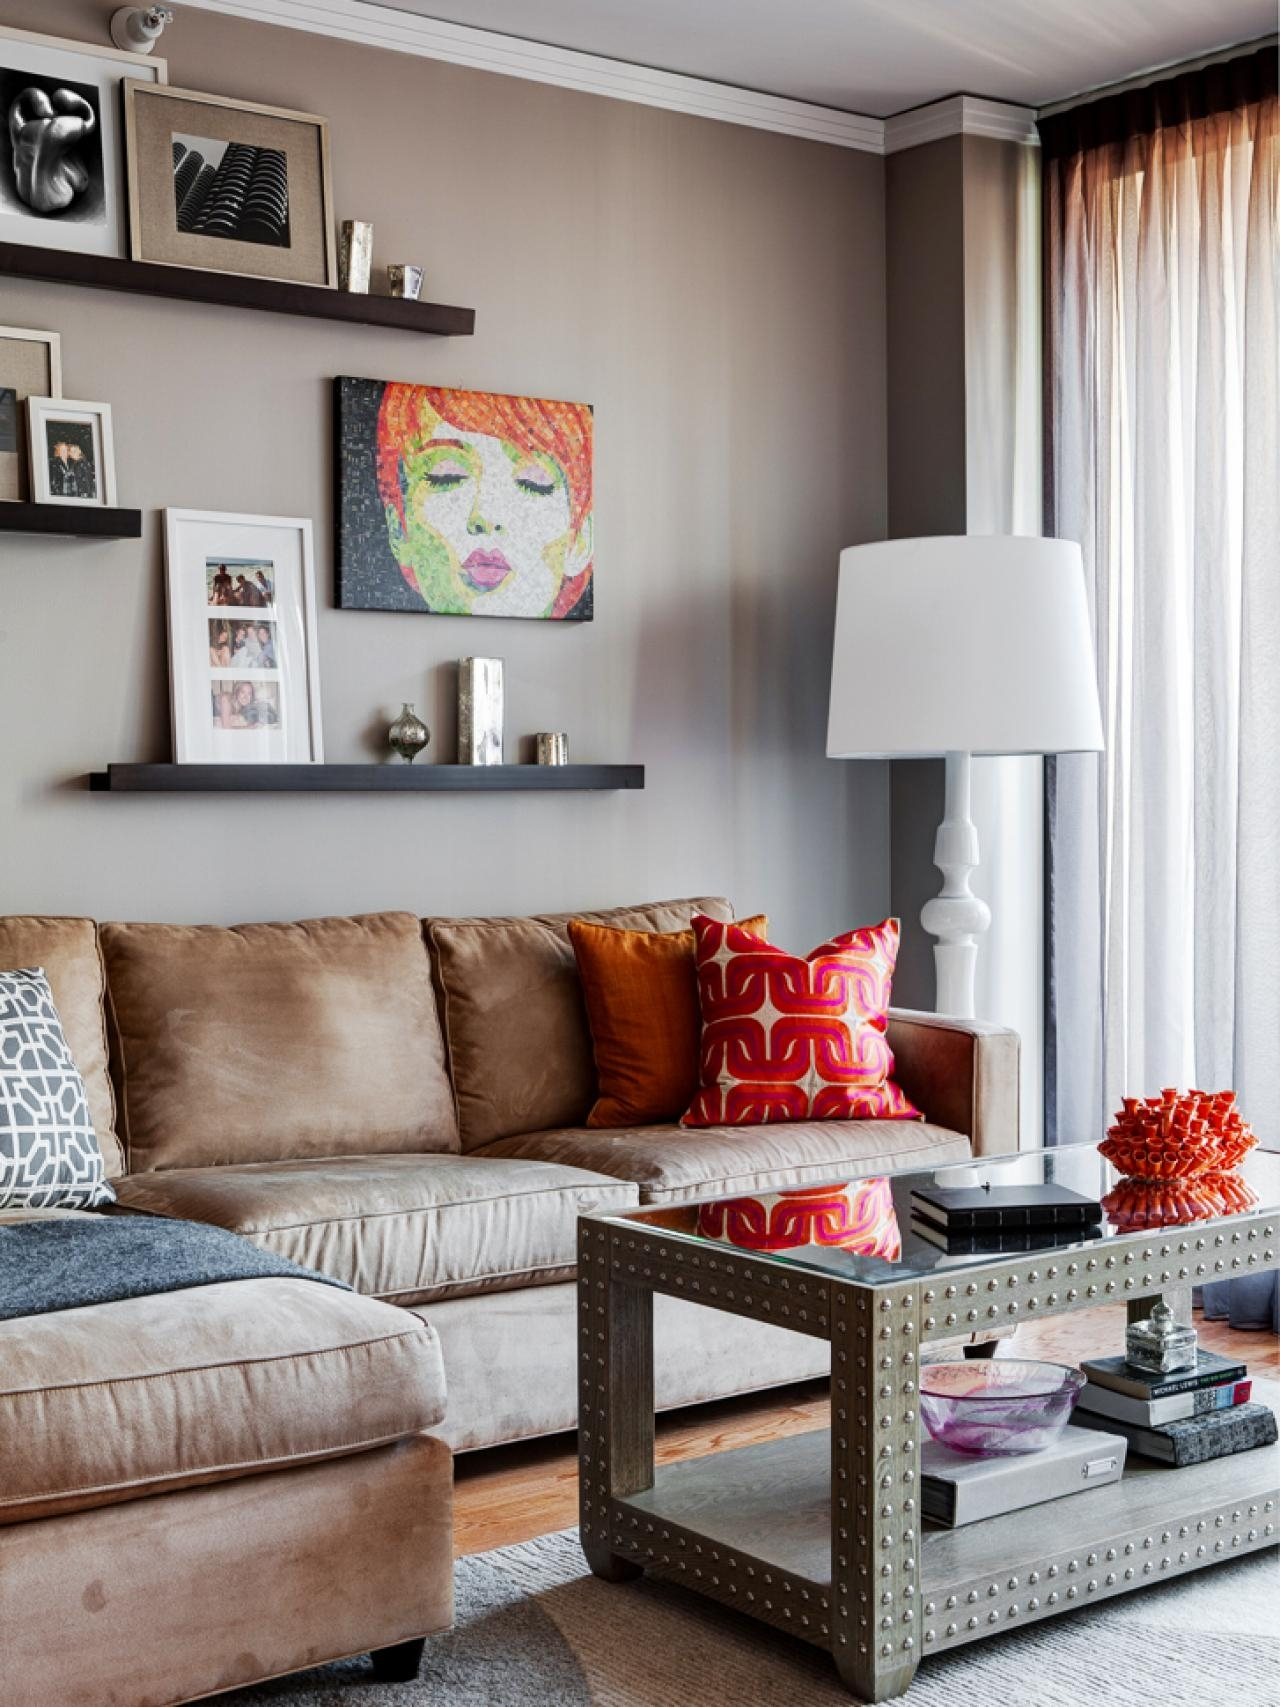 Choosing Living Room Furniture | Hgtv In Most Current Wall Accents Behind Tv Or Couch (Gallery 6 of 15)